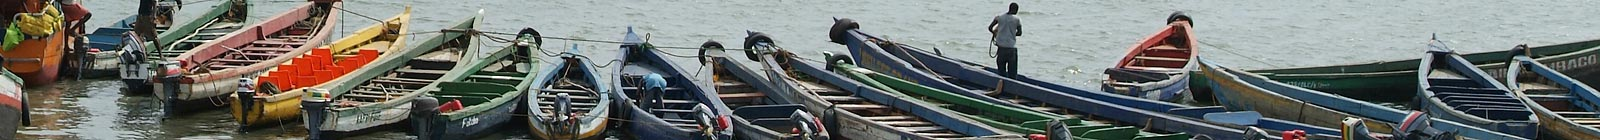 Conakry, small boats, pi rogues, in little harbour, for departure to the islands of Kassa Guinea, Guinee.